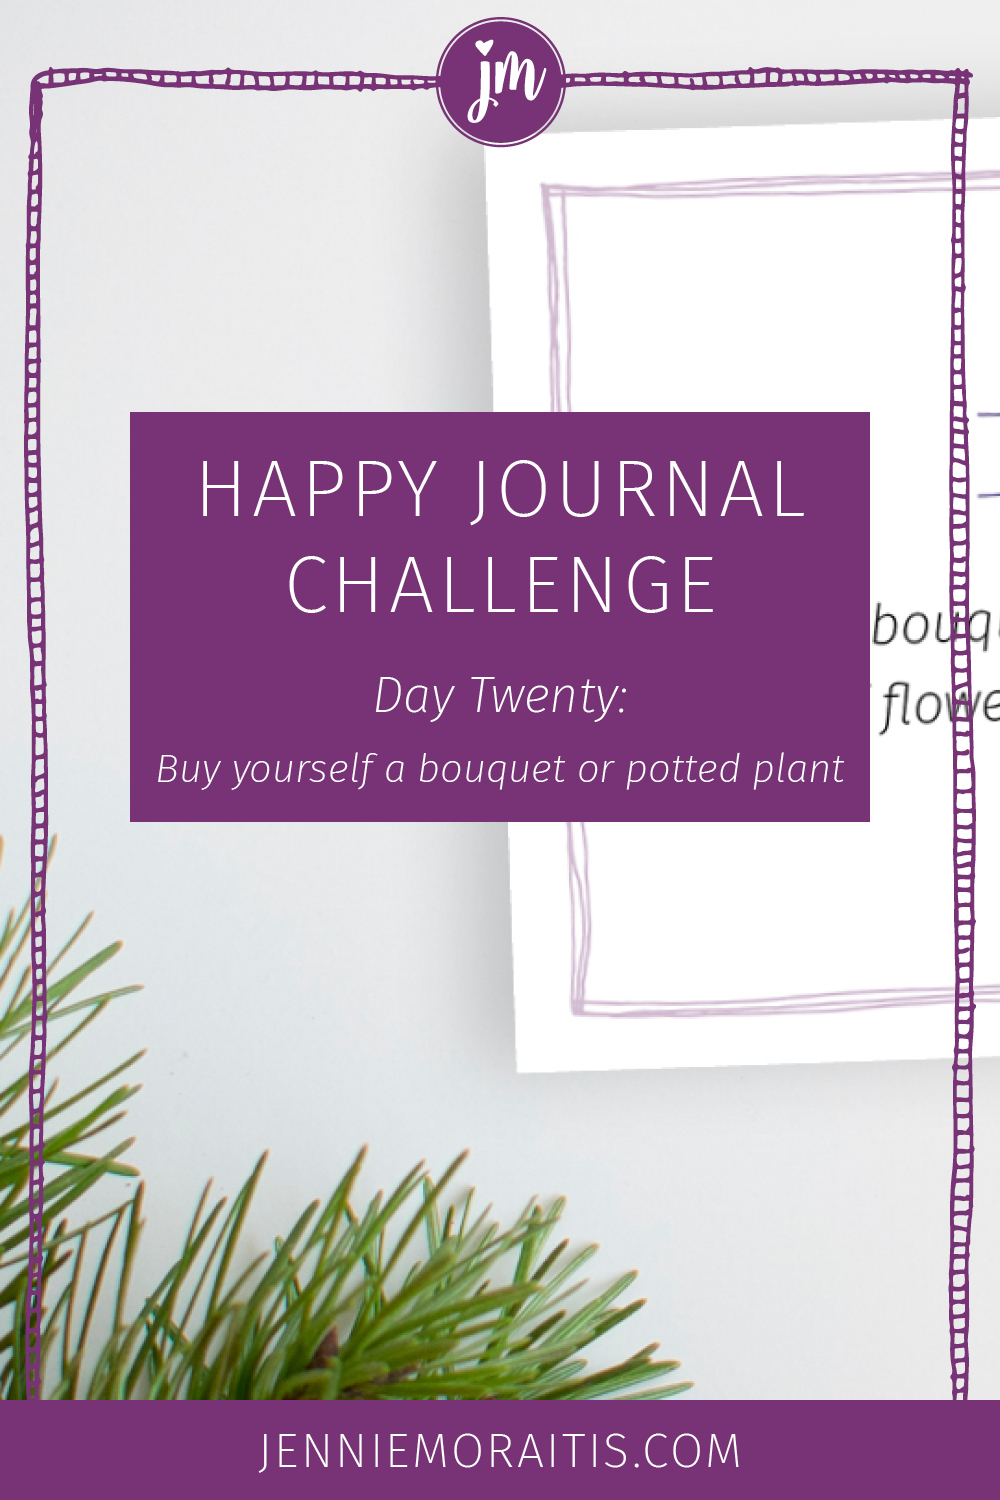 Even if you've got a black thumb, you can participate in today's prompt! Buy a plant and bring some life and beauty into your life (and increase your happiness!)